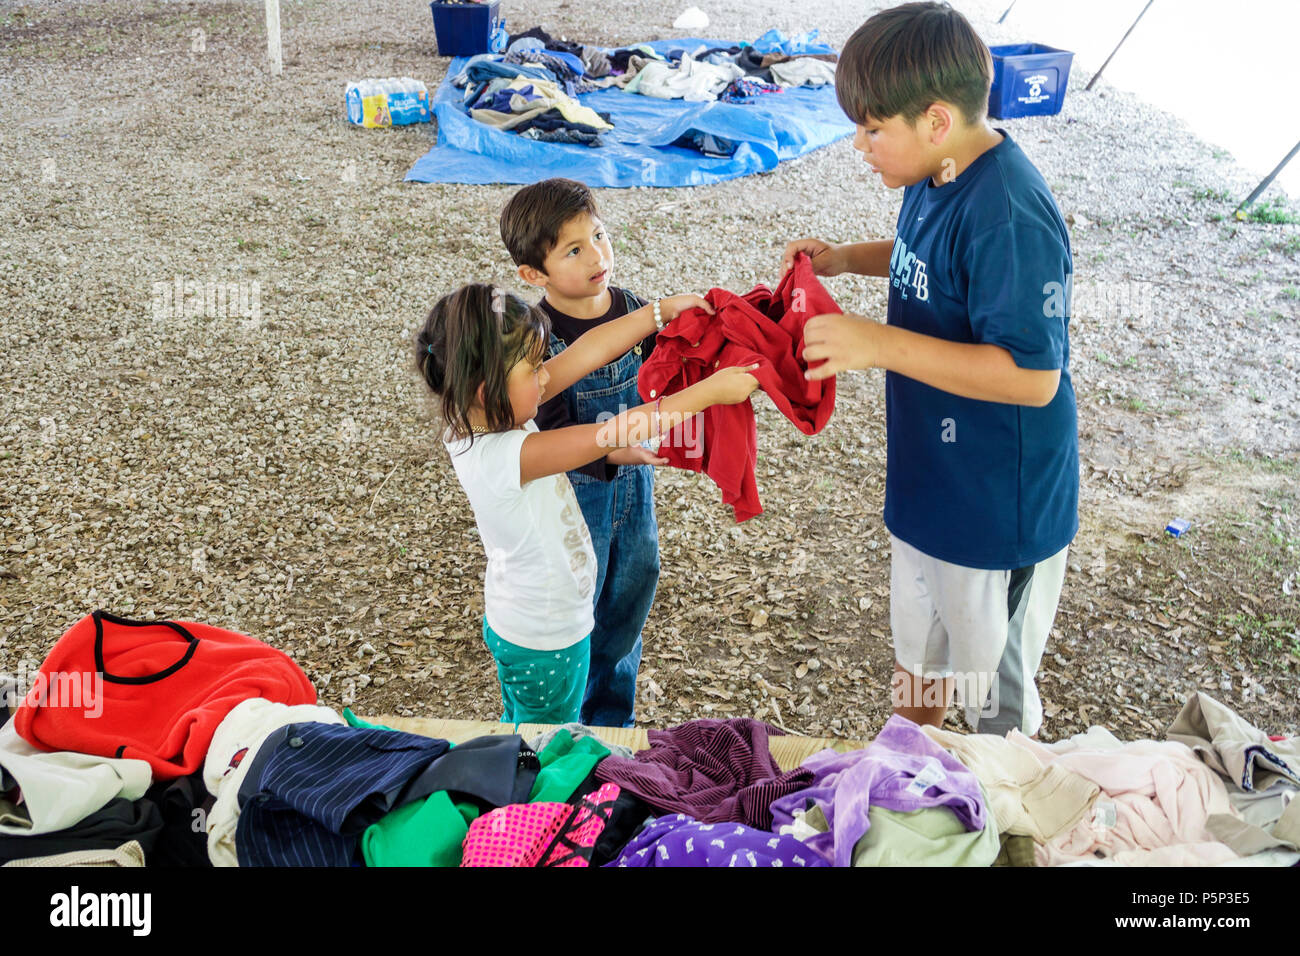 Florida LaBelle after Hurricane Irma storm assistance destruction aftermath disaster recovery relief donations free clothing distribution site point H - Stock Image